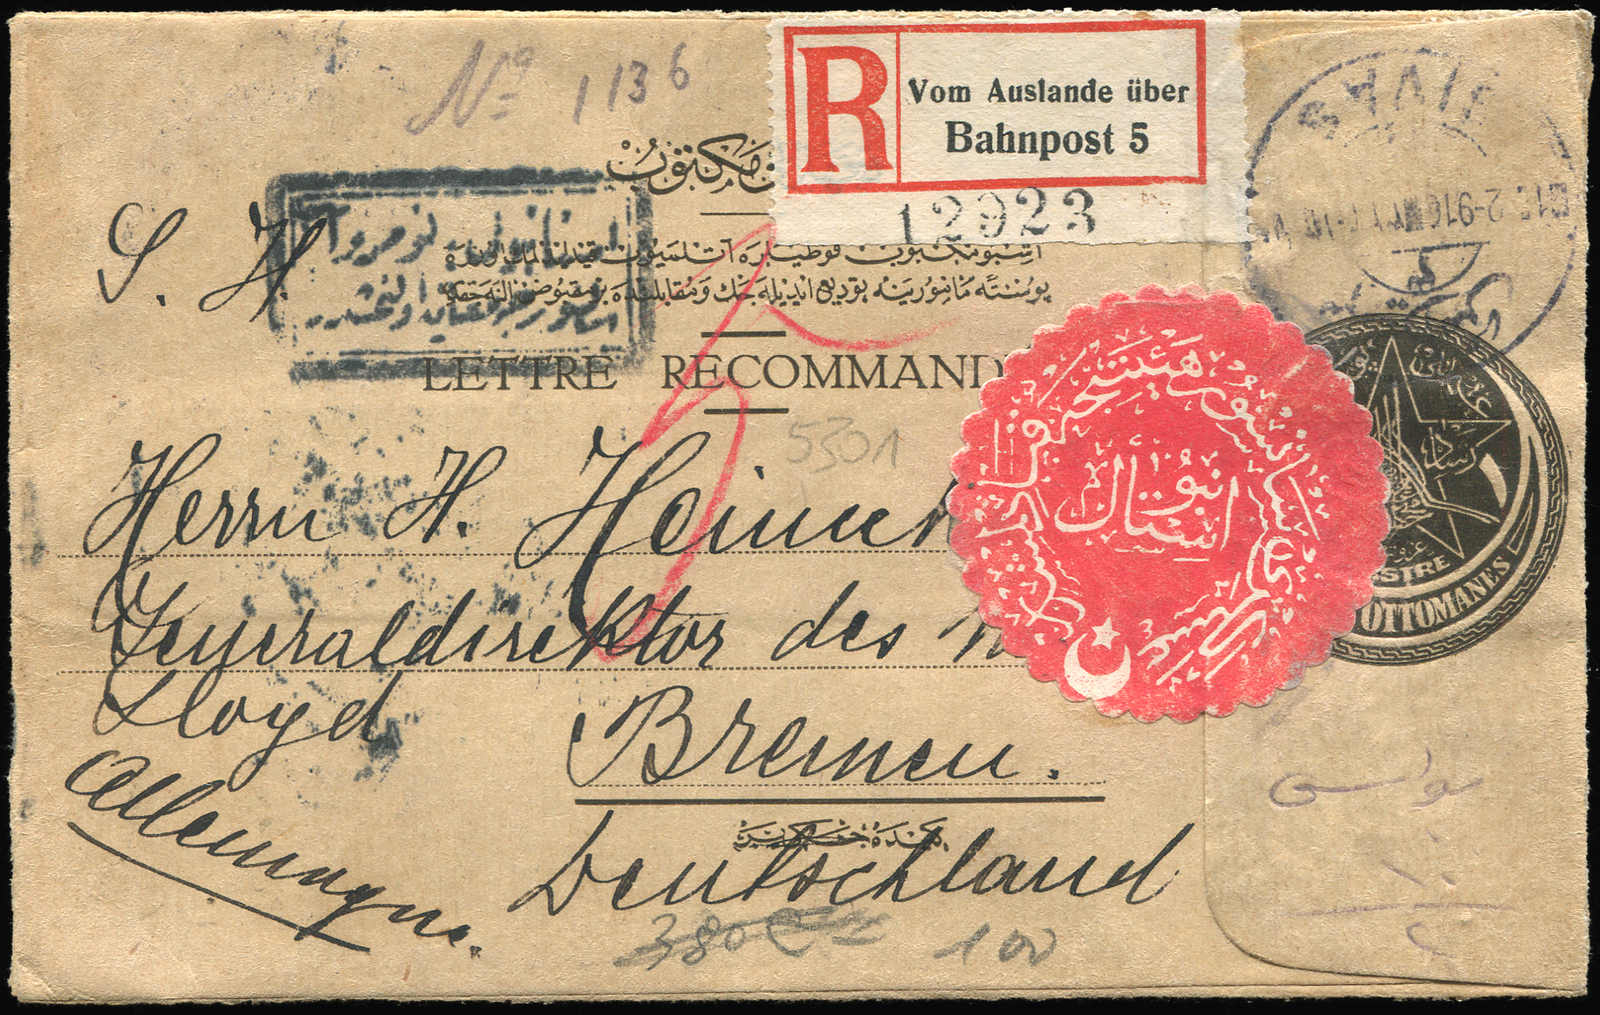 Lot 6318 - Deutsches Reich Deutsche Auslandspost Turkey -  Auktionshaus Schlegel 26 Public Auction